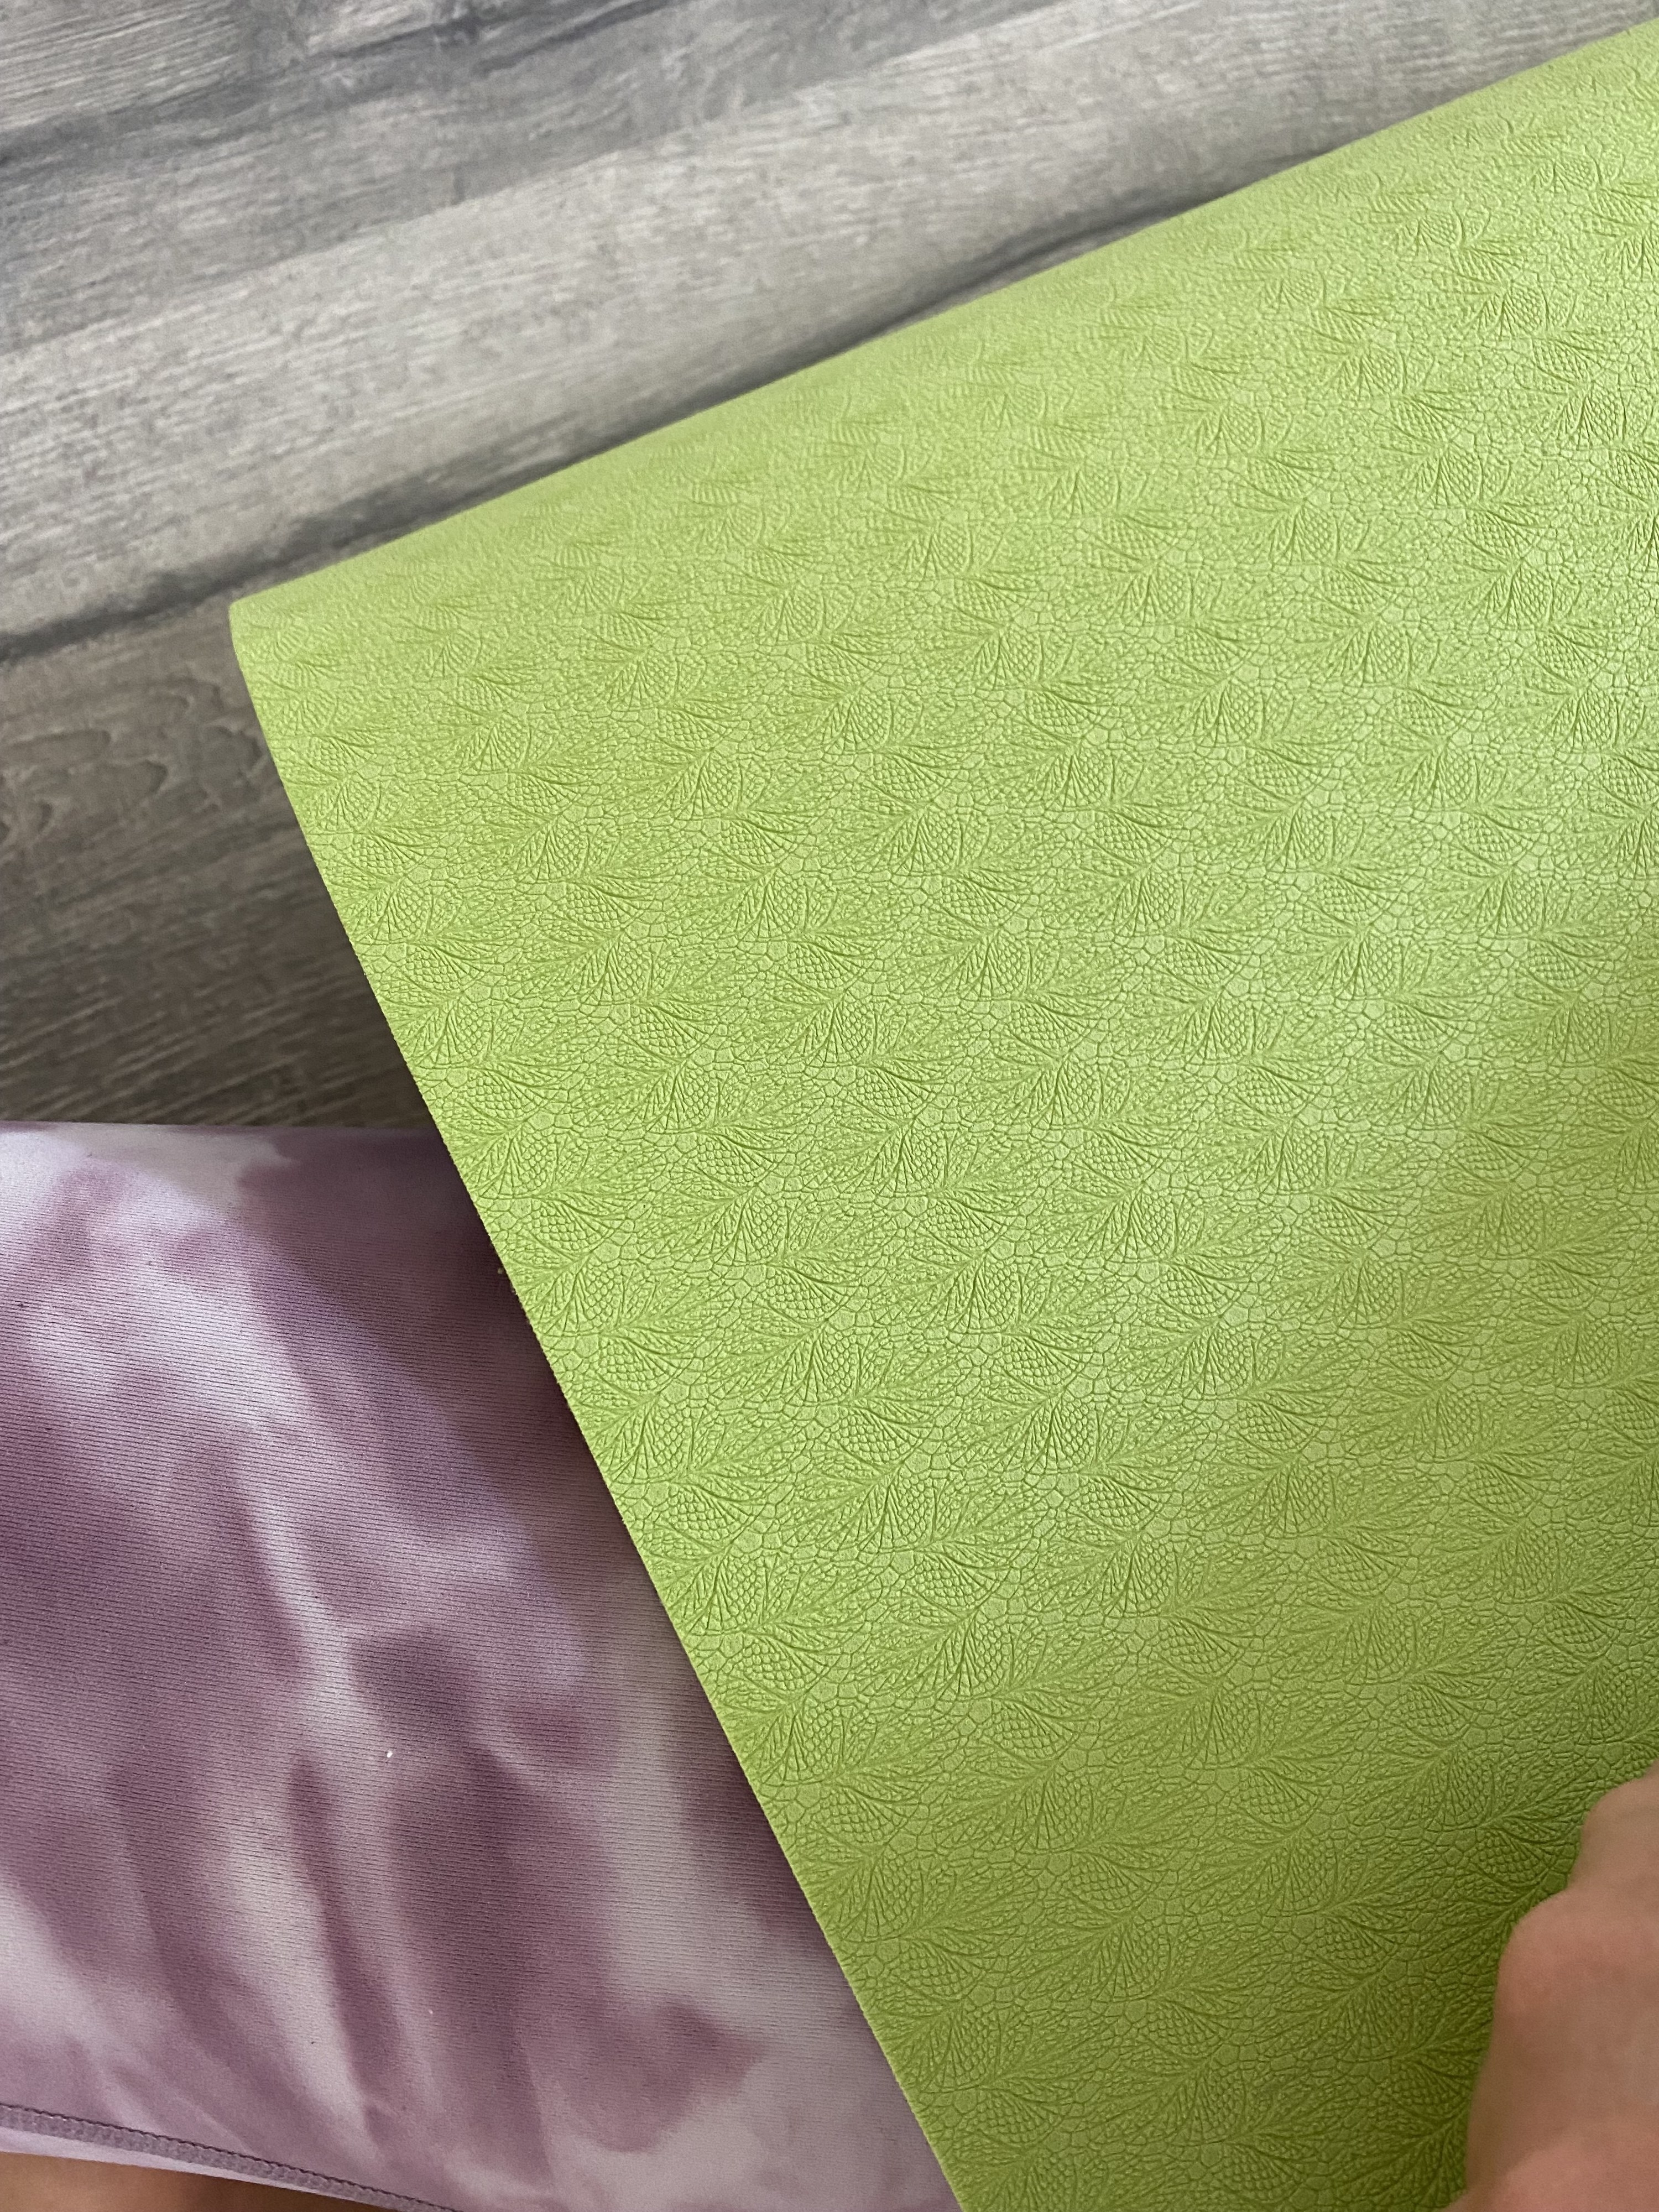 The bottom of the yoga mat, which is textured for grippiness